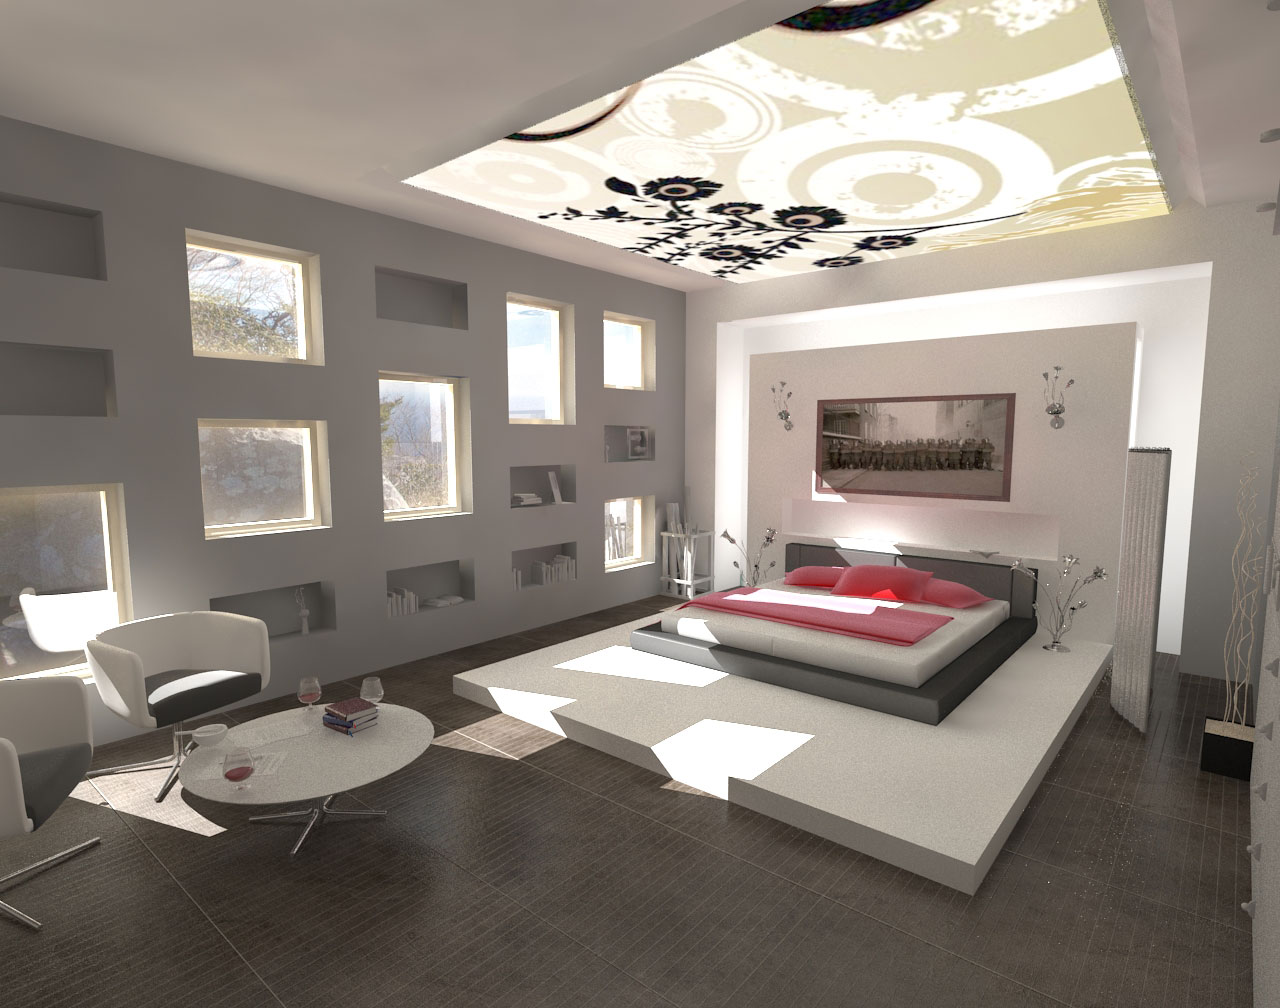 Decorations minimalist design modern bedroom interior for Minimalist home design